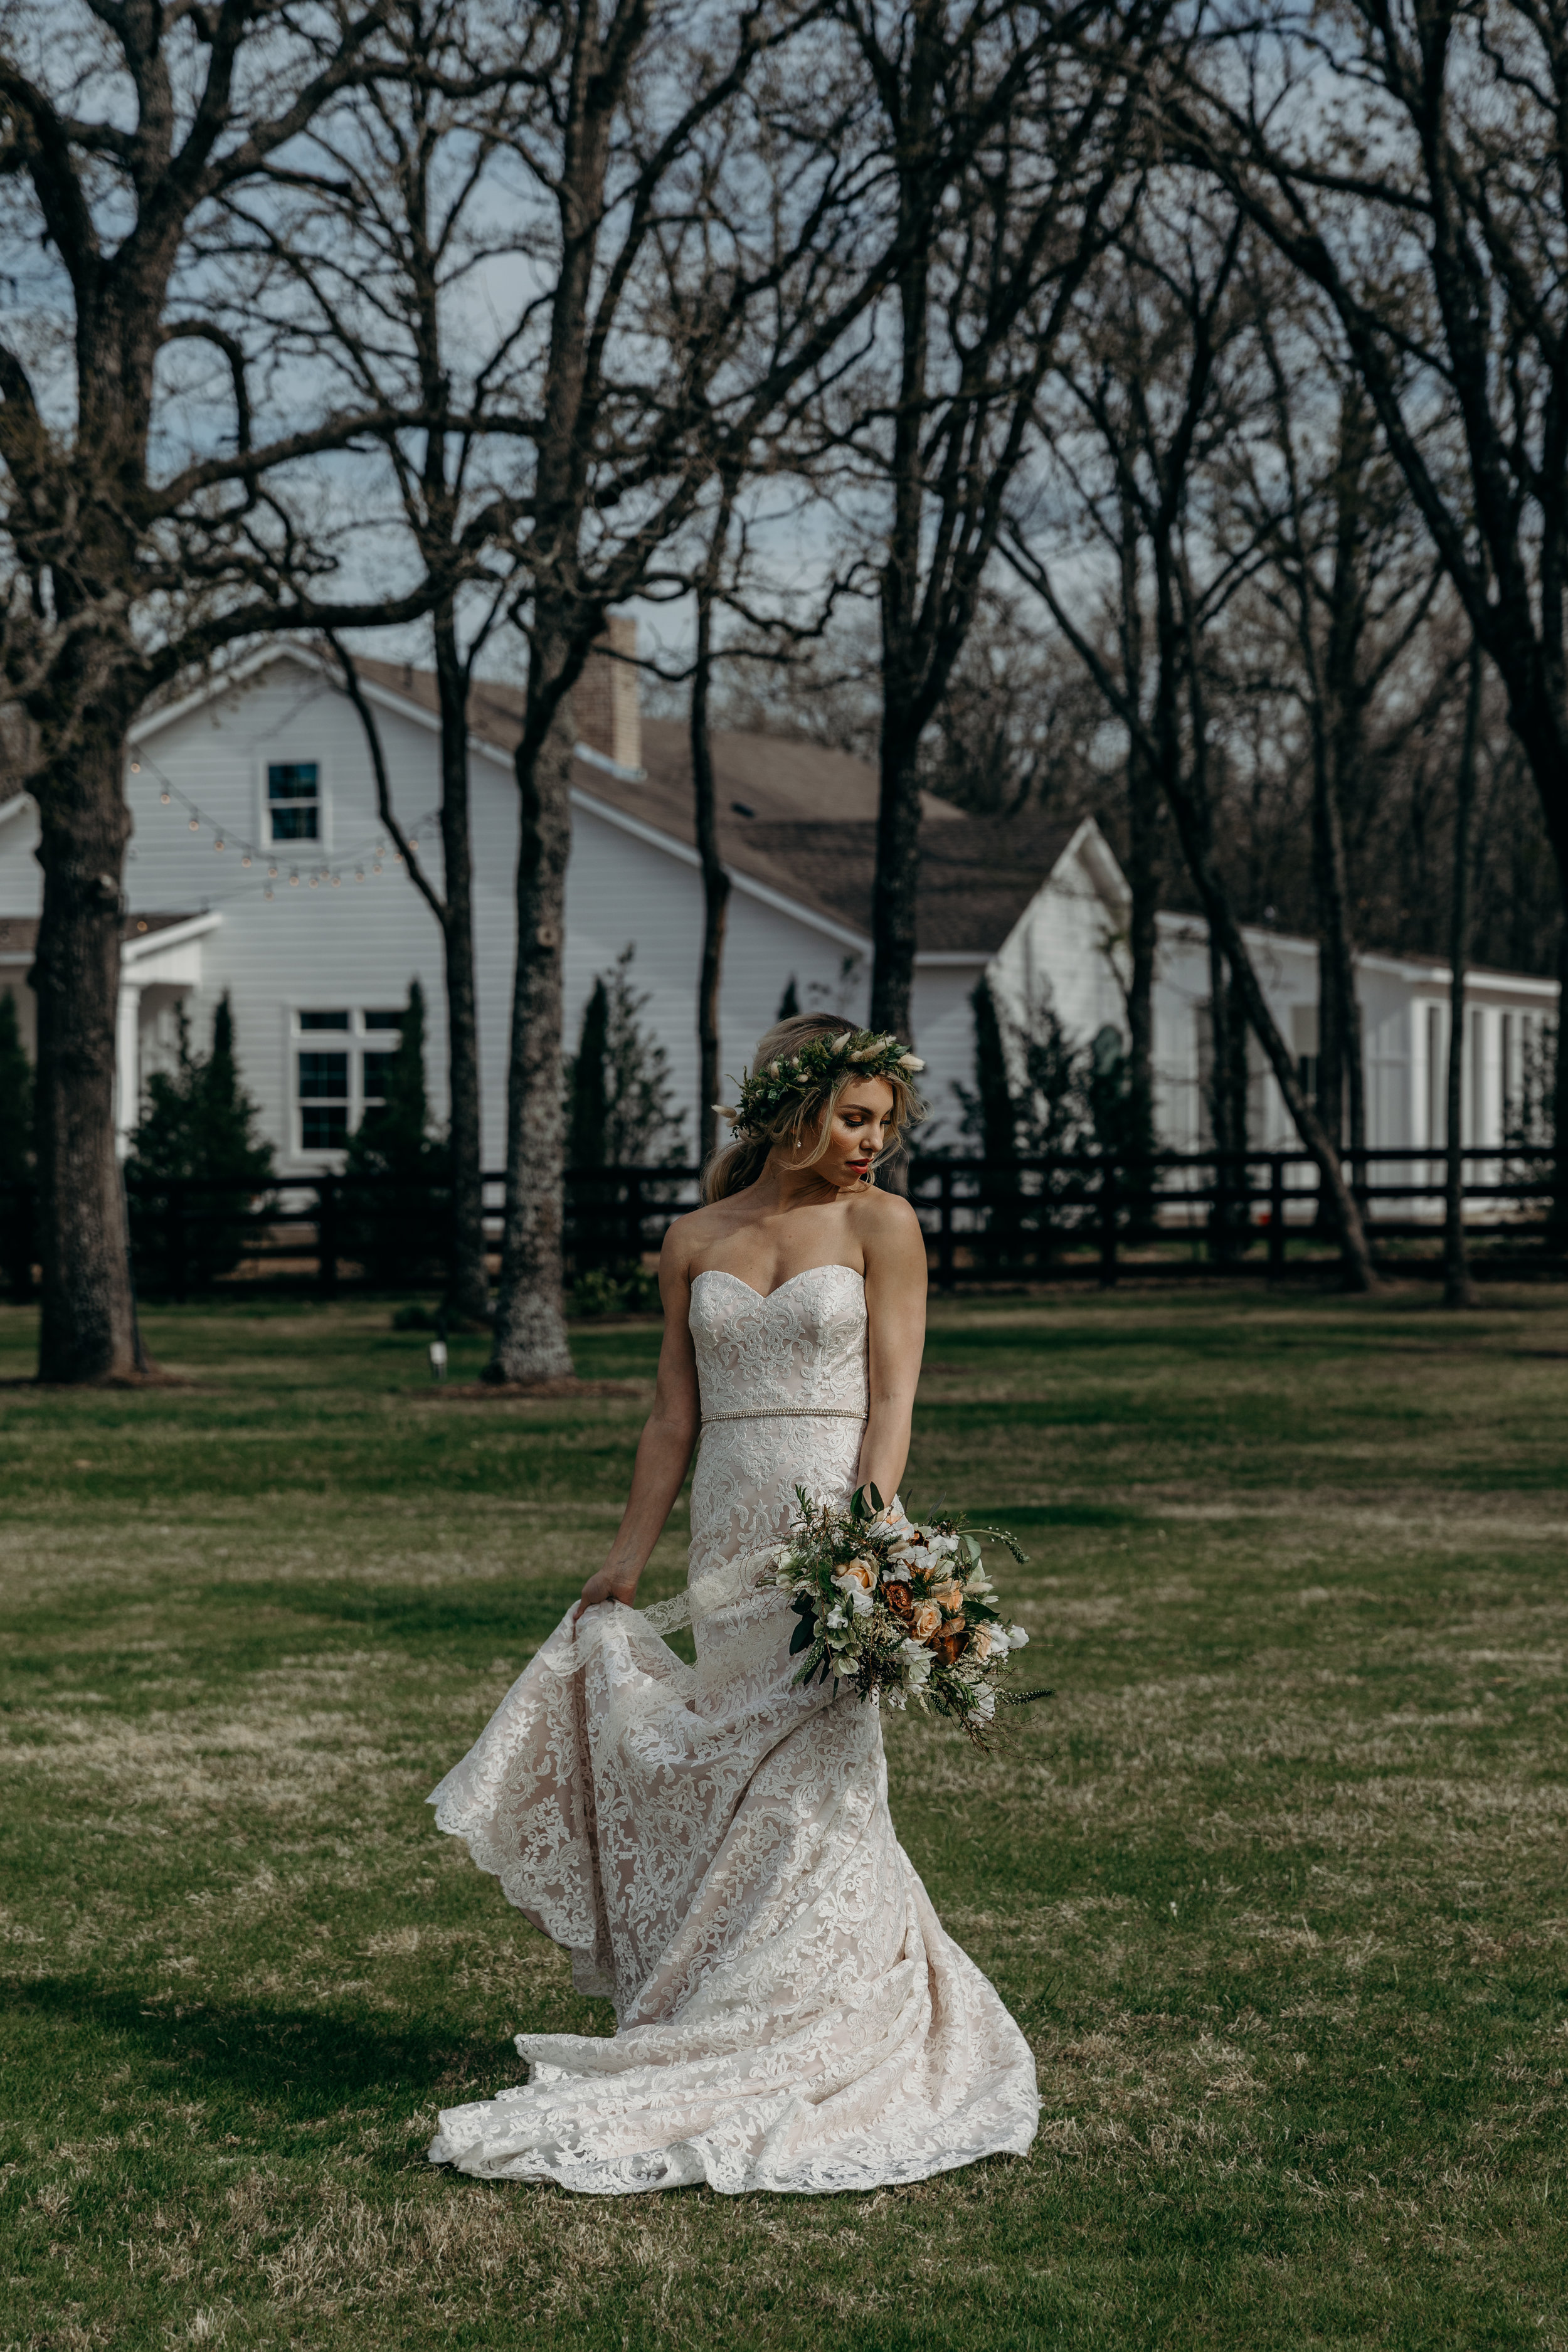 TheWhiteSparrowStyledWeddingShootinTexas-29.jpg